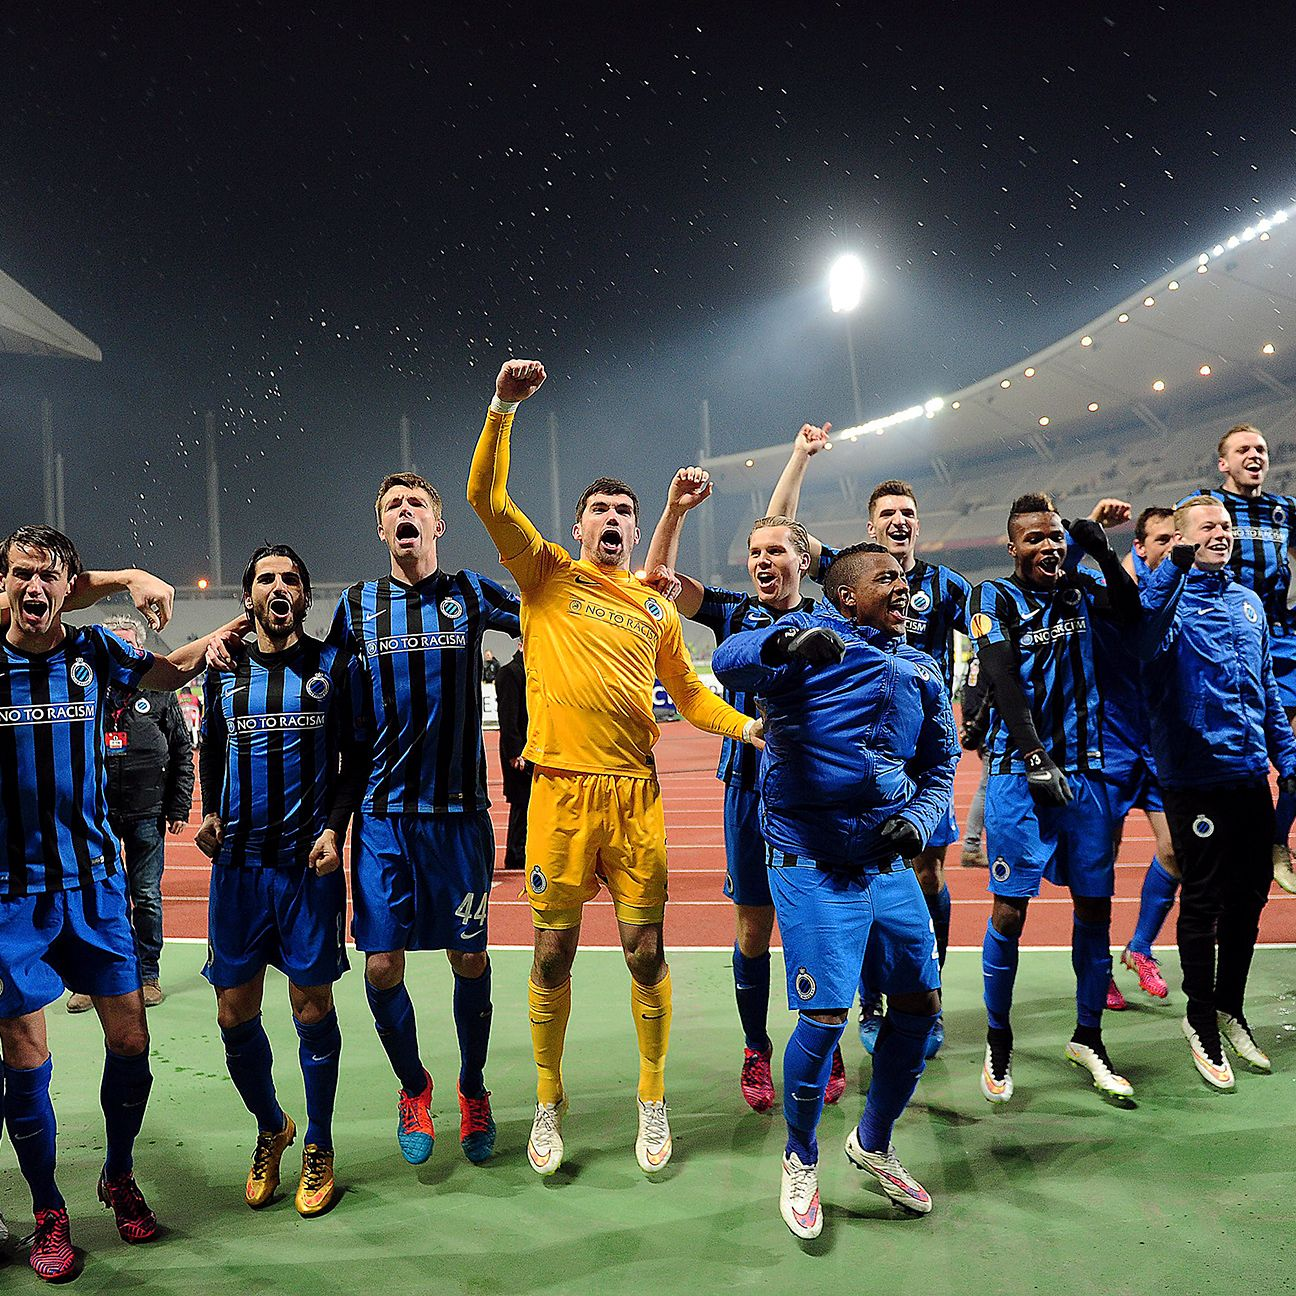 With a victory already in the Belgian Cup final, Club Brugge still have a chance at winning a treble this season.